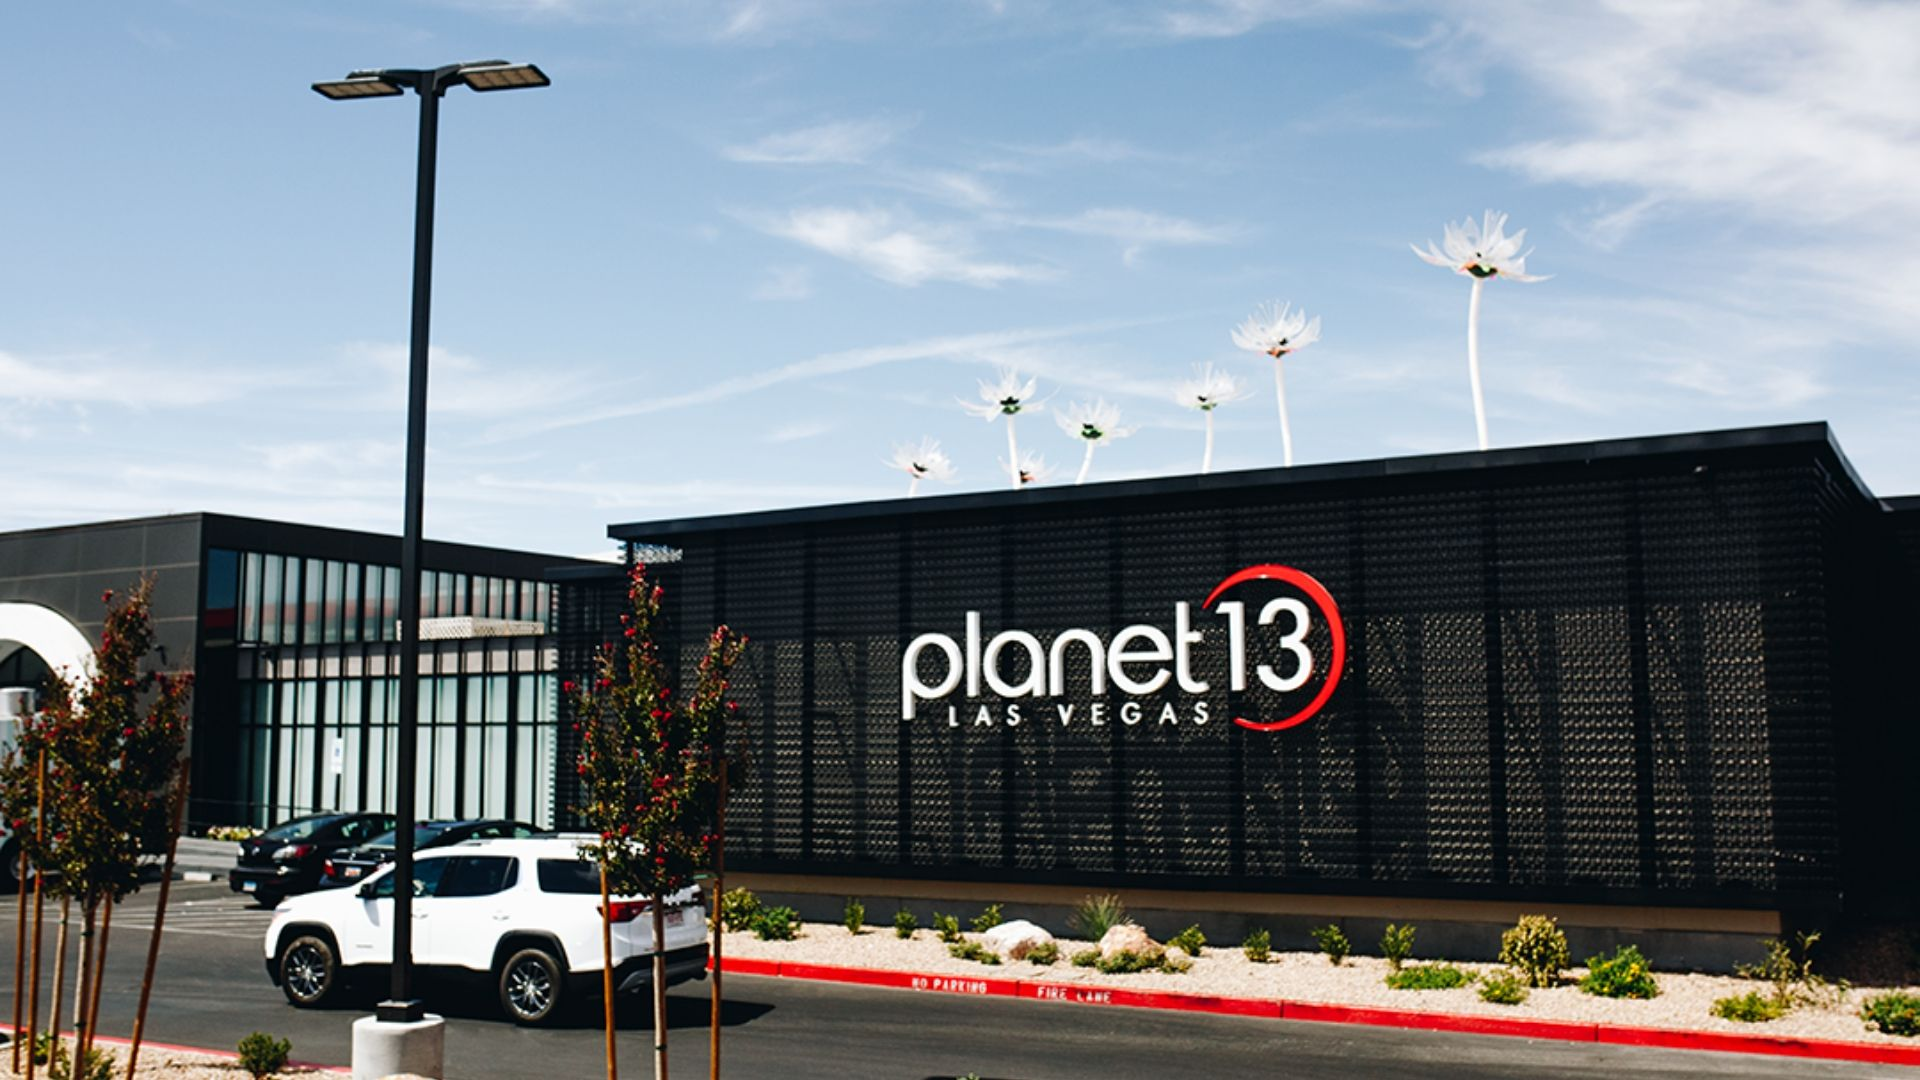 Planet 13: The Biggest Dispensary & Weed Shop in Las Vegas